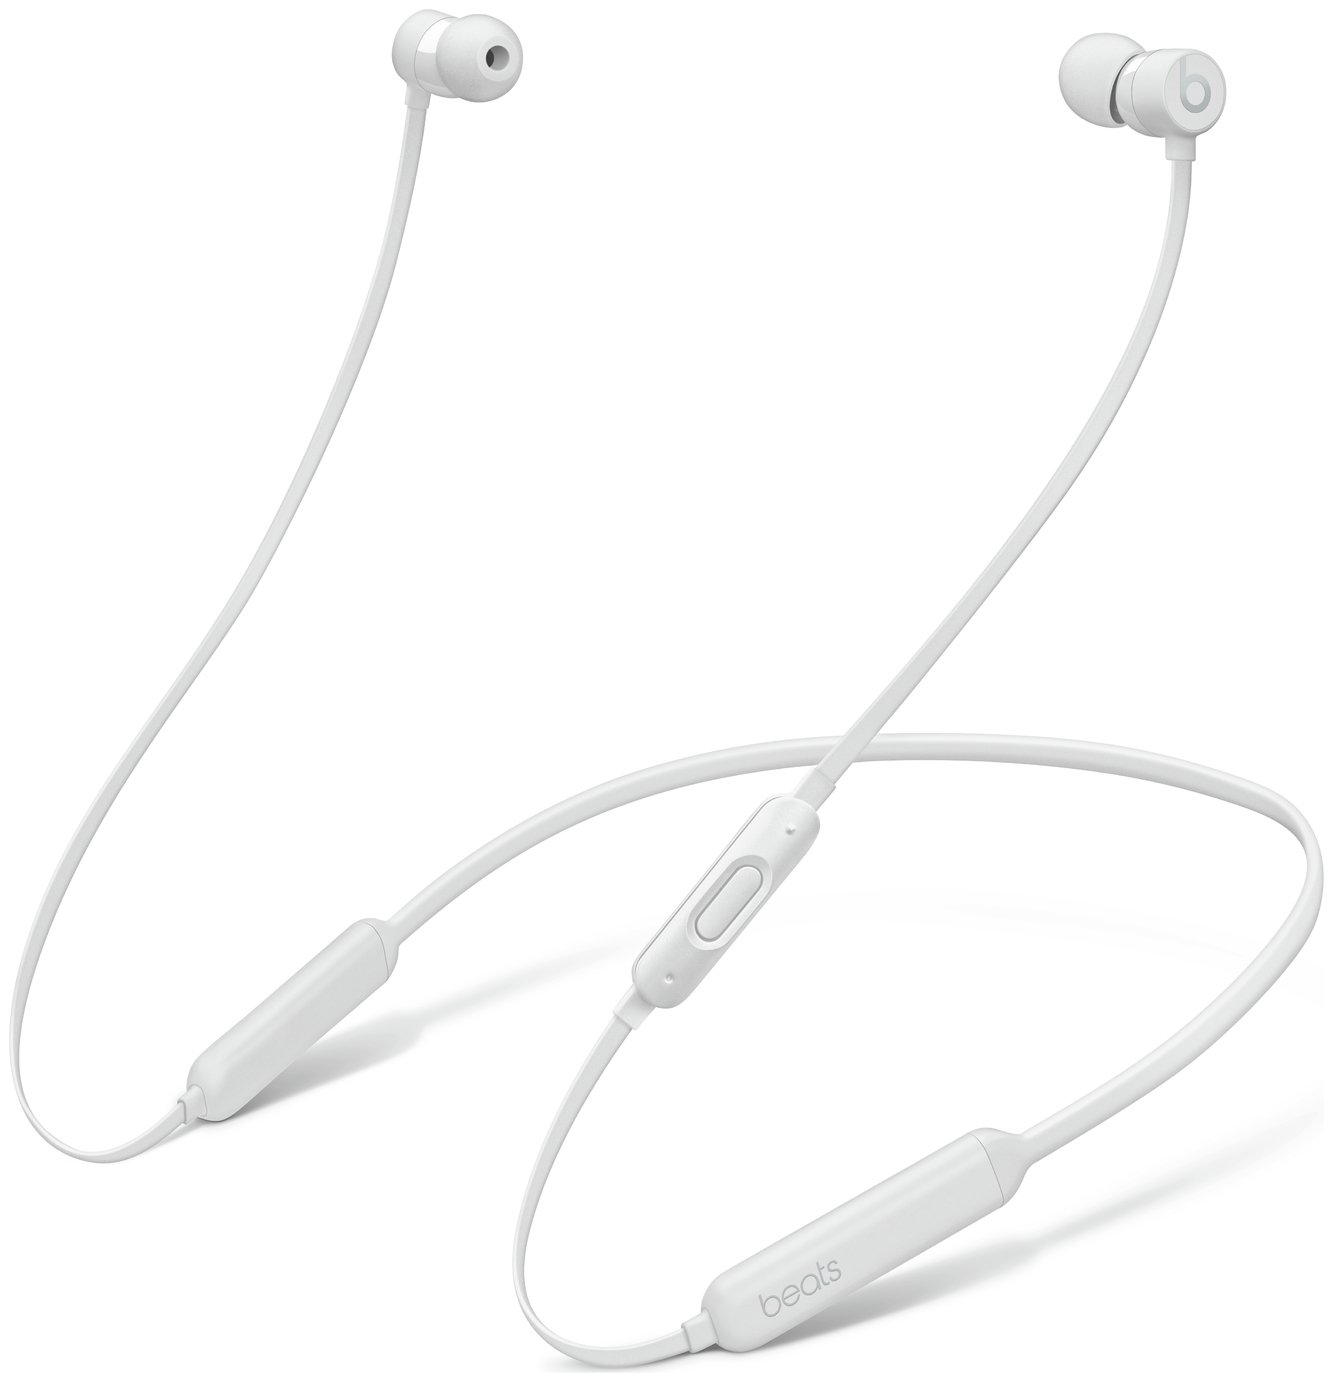 Beats X In-Ear Wireless Earphones - White